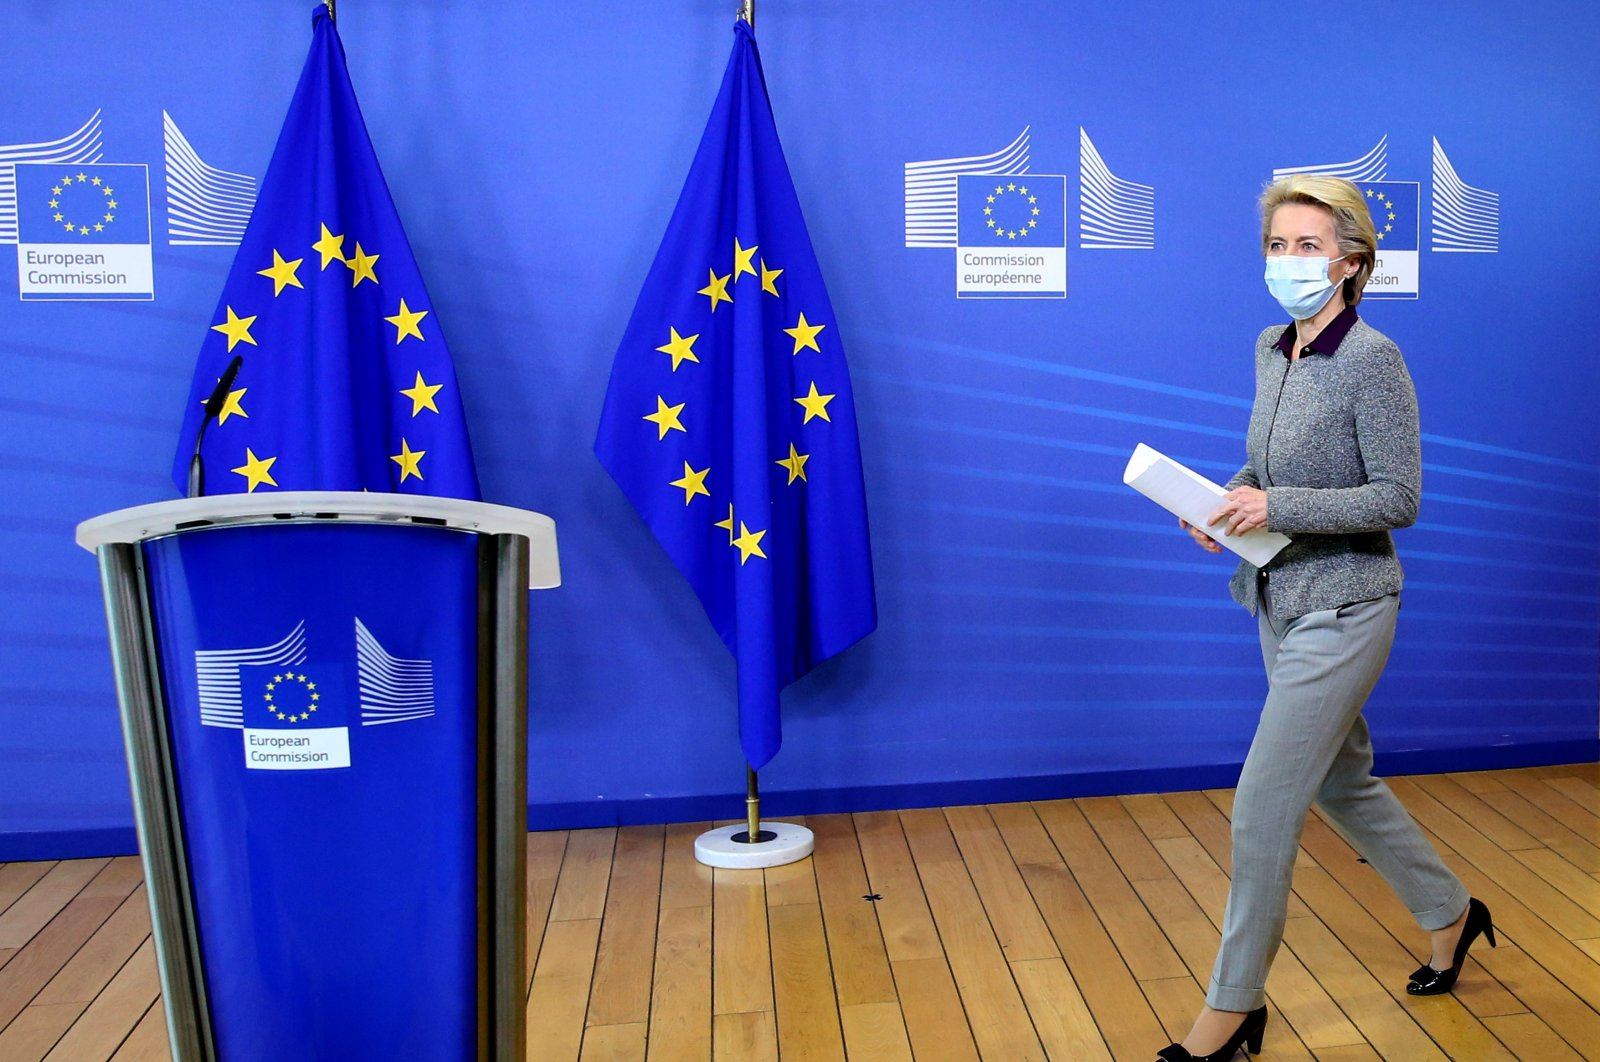 President of the European Commission Ursula von der Leyen, wearing a protective face mask, arrives for a media conference at EU headquarters in Brussels, Aug. 27, 2020. (AP Photo)